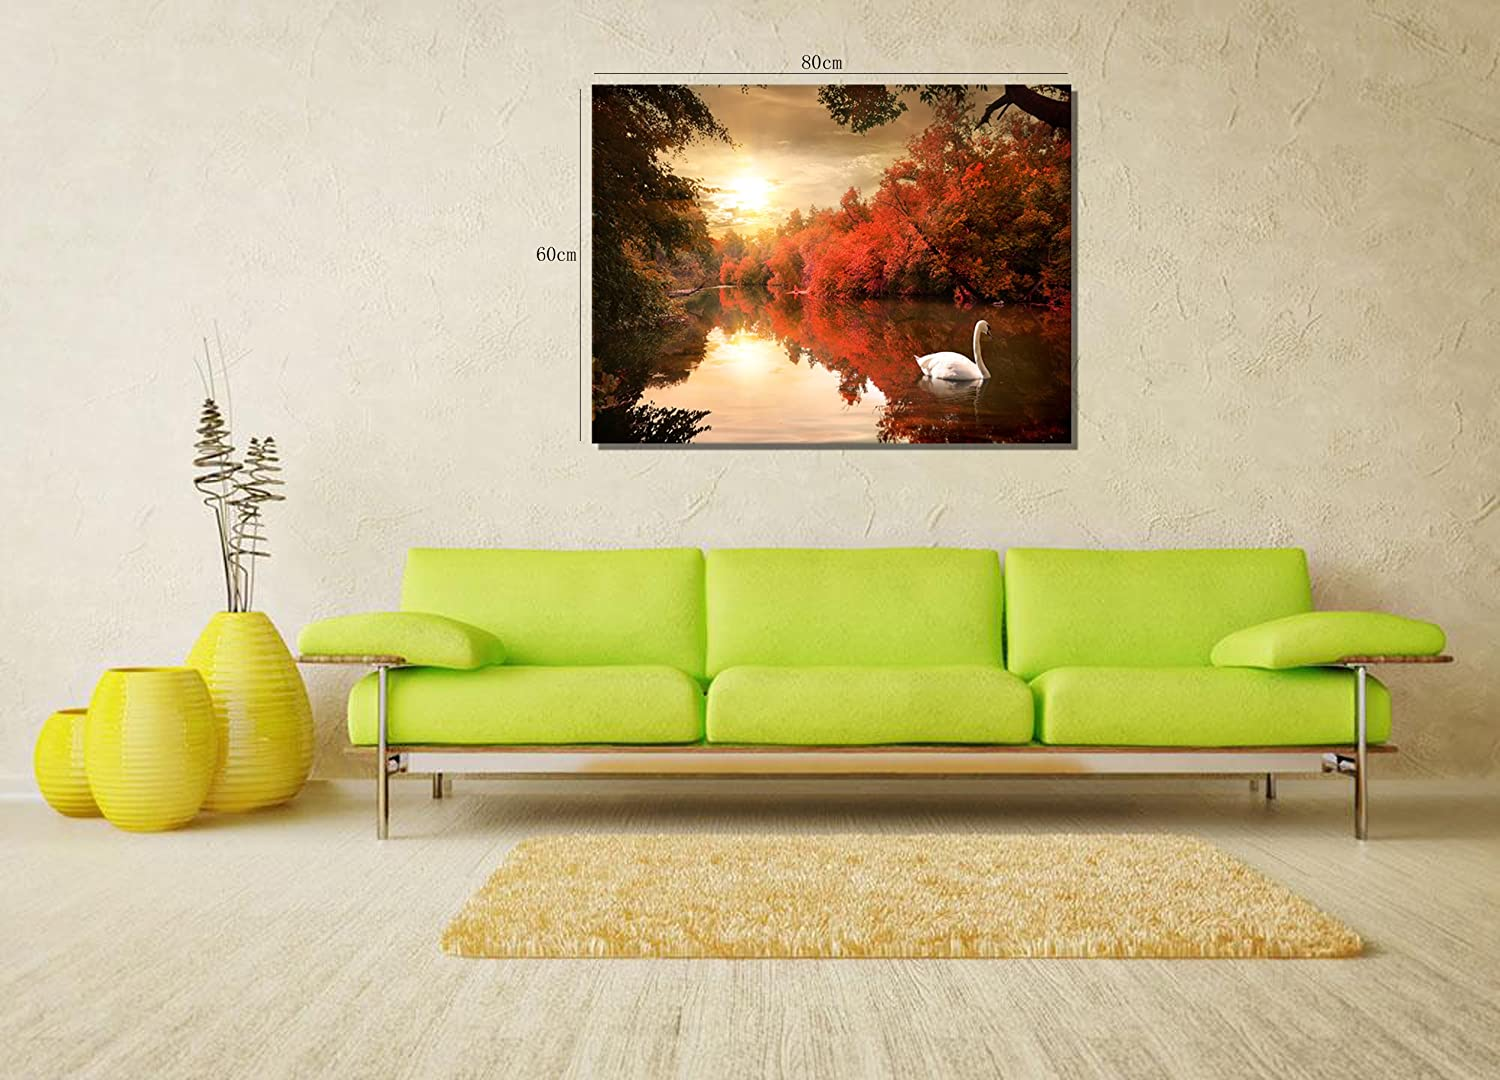 Amazon.com: 789Art - Canvas Wall Art Wall Decor A Swan On The River ...